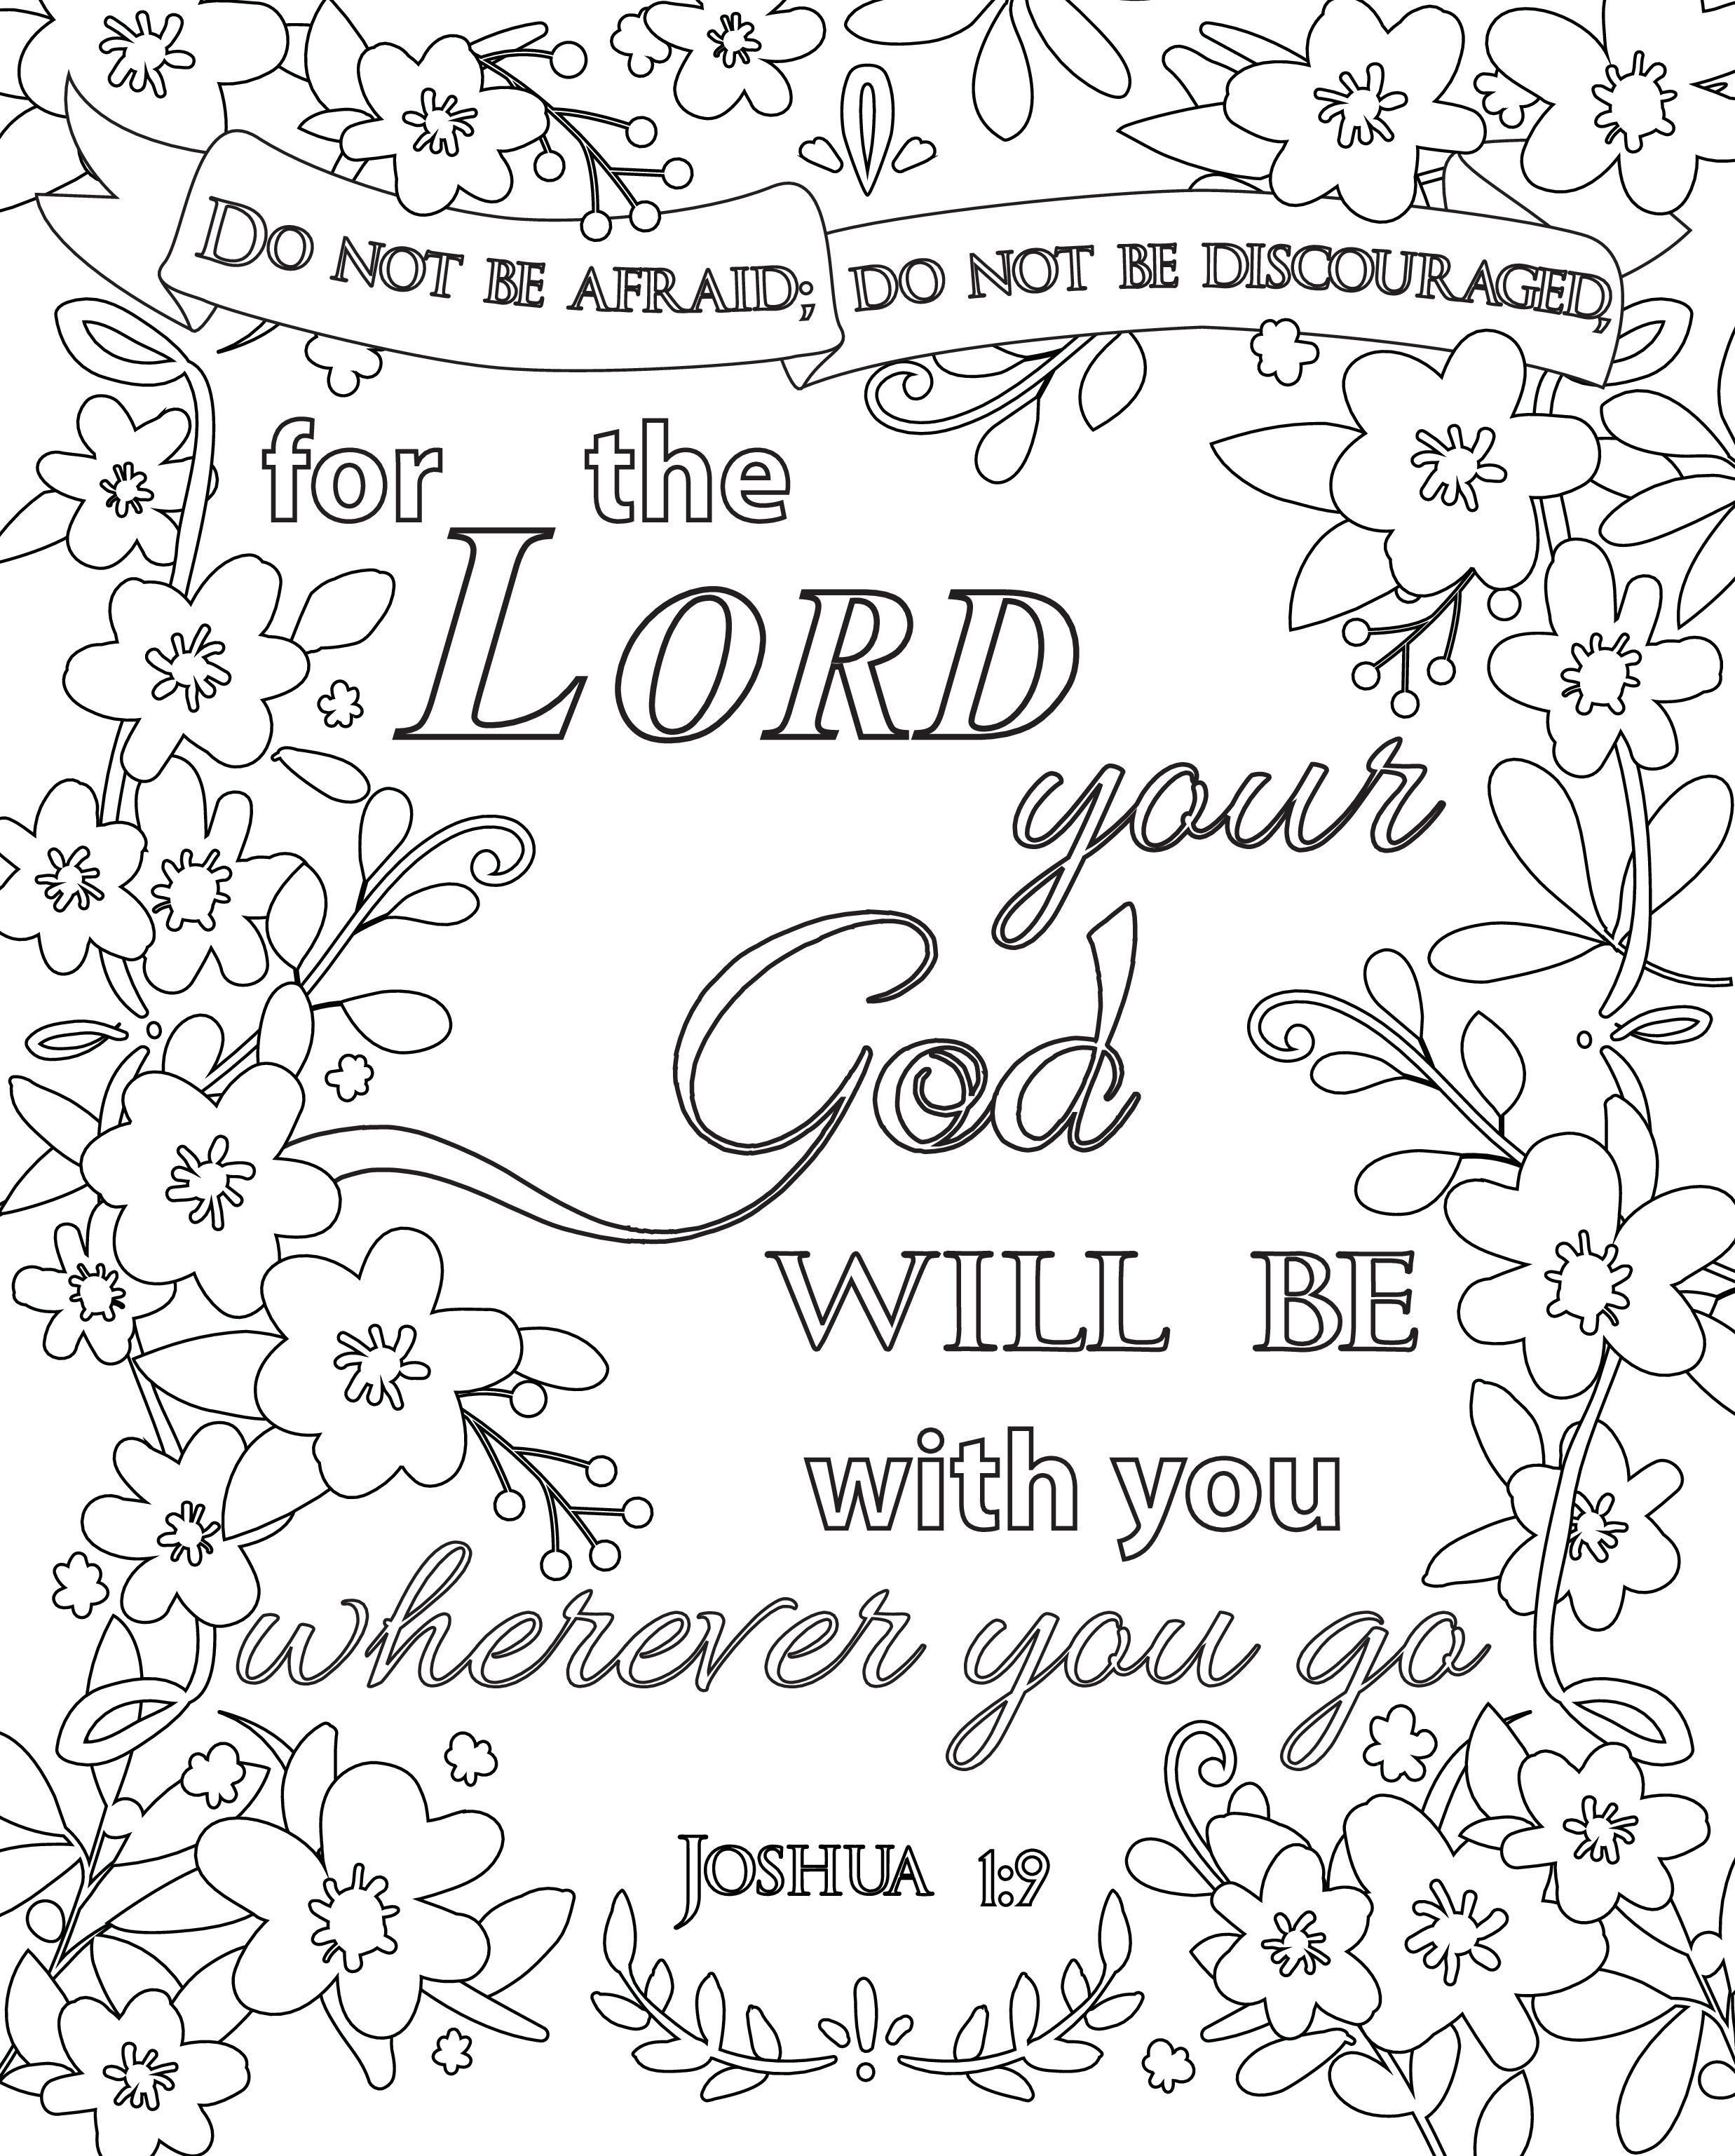 Mymommyblogs Com Nbspthis Website Is For Sale Nbspmymommyblogs Resources And Information Bible Verse Coloring Page Coloring Pages Inspirational Bible Coloring Sheets